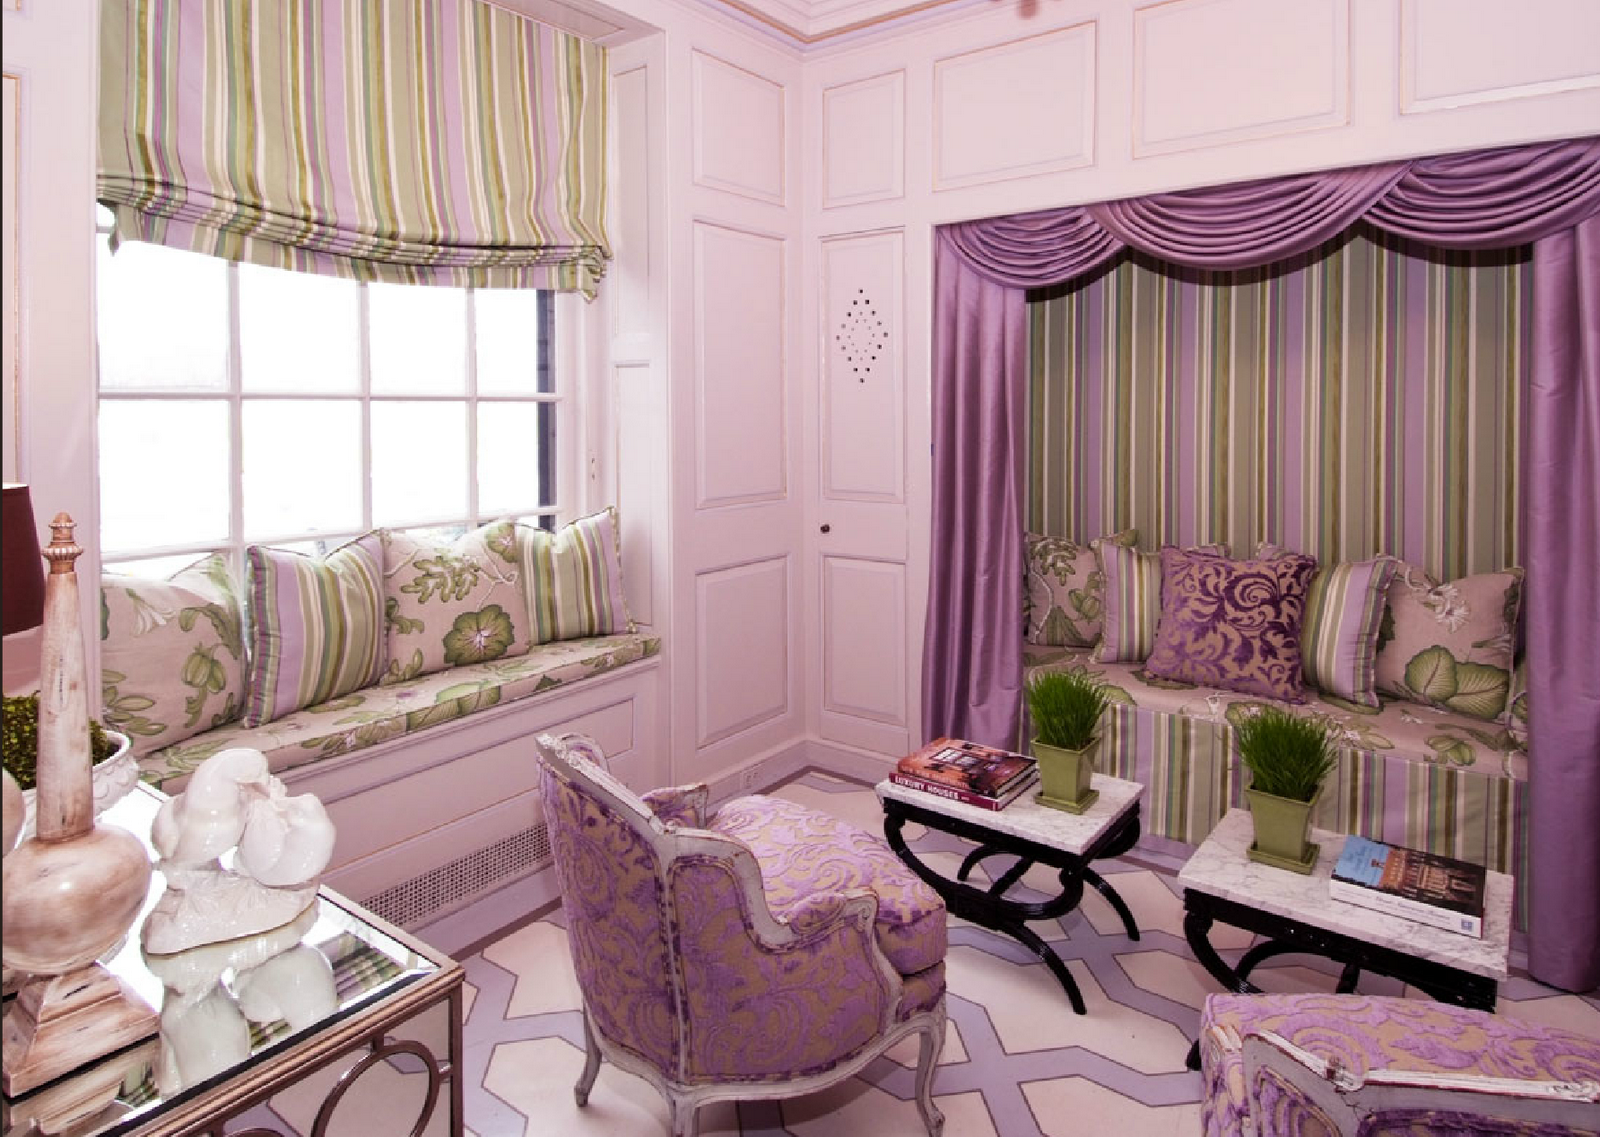 4 teen girls bedroom 7 interior design ideas for Bedroom designs for girls